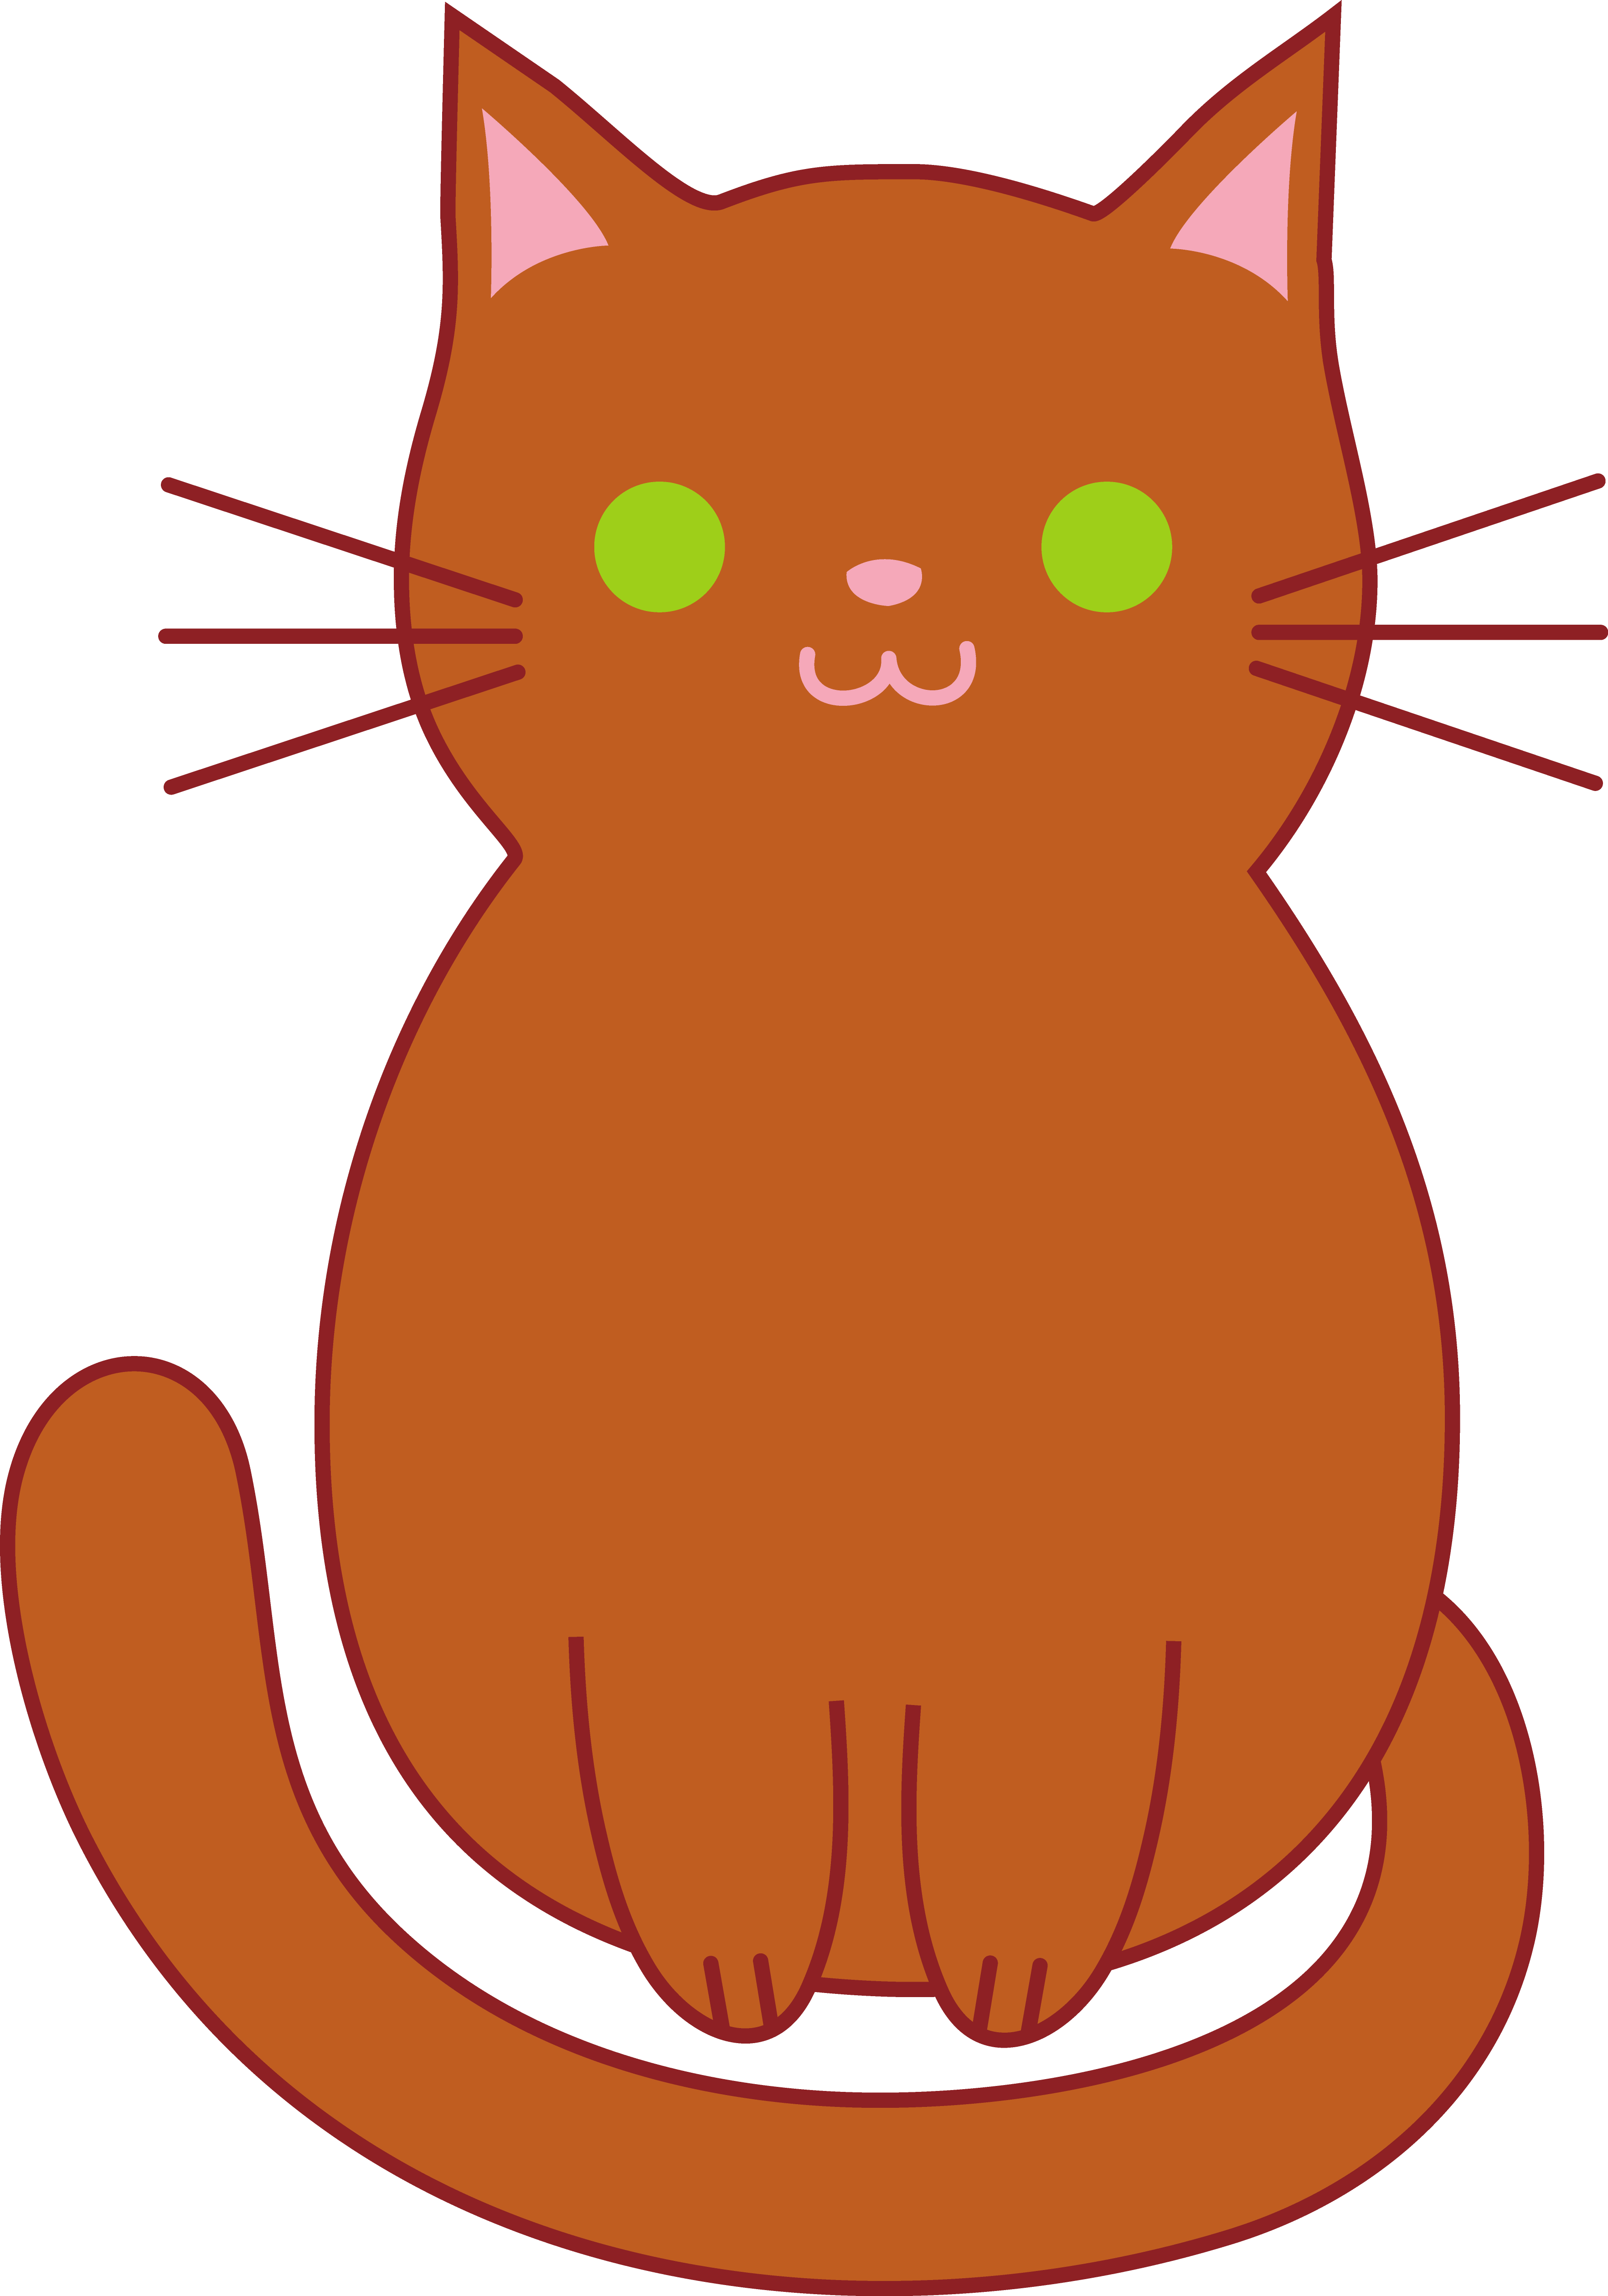 Kittens clipart translucent. Cgedkzki png cute